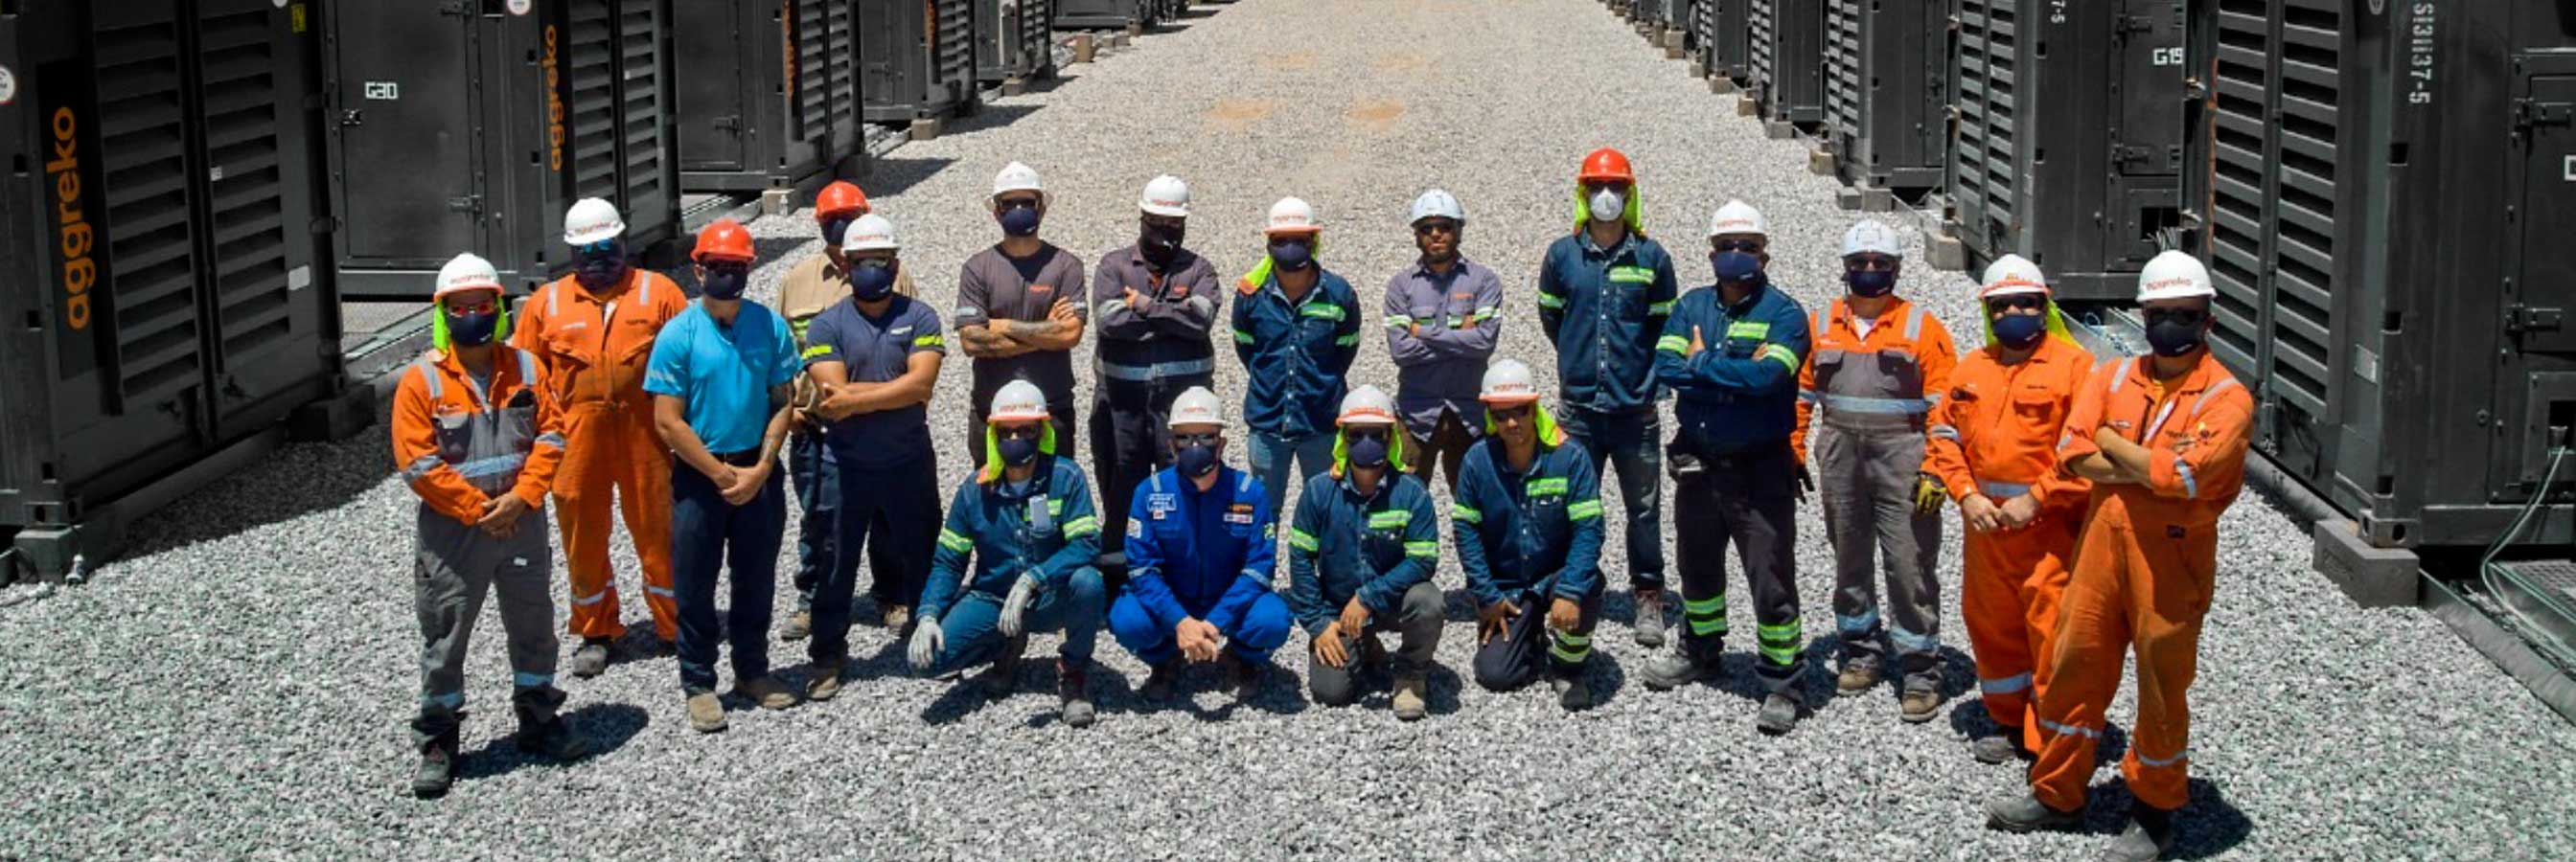 Team of engineers pose in various colour overalls at generator site.